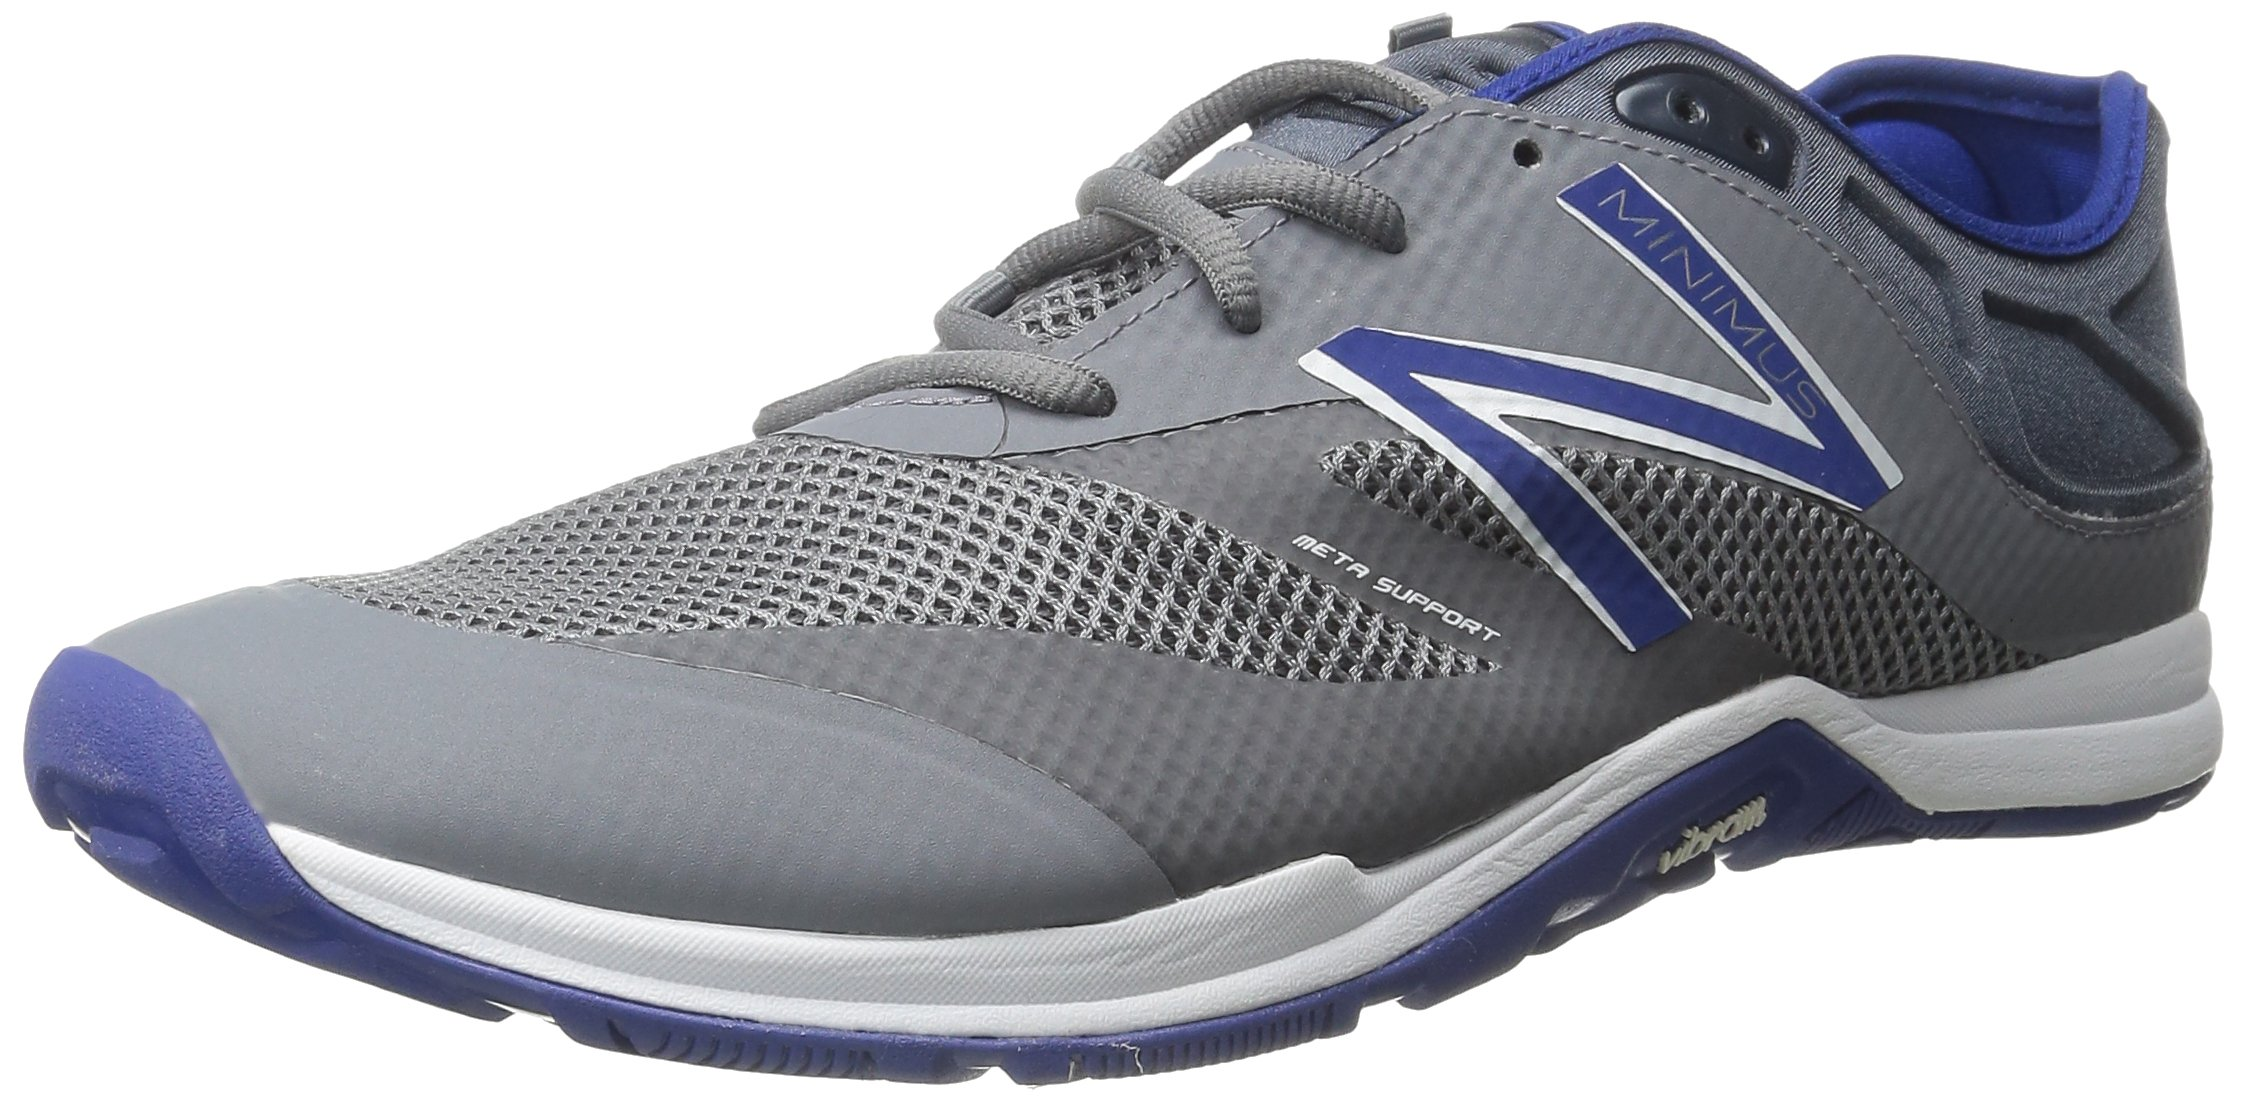 New Balance Men S V Vibram Minimus Training Shoe